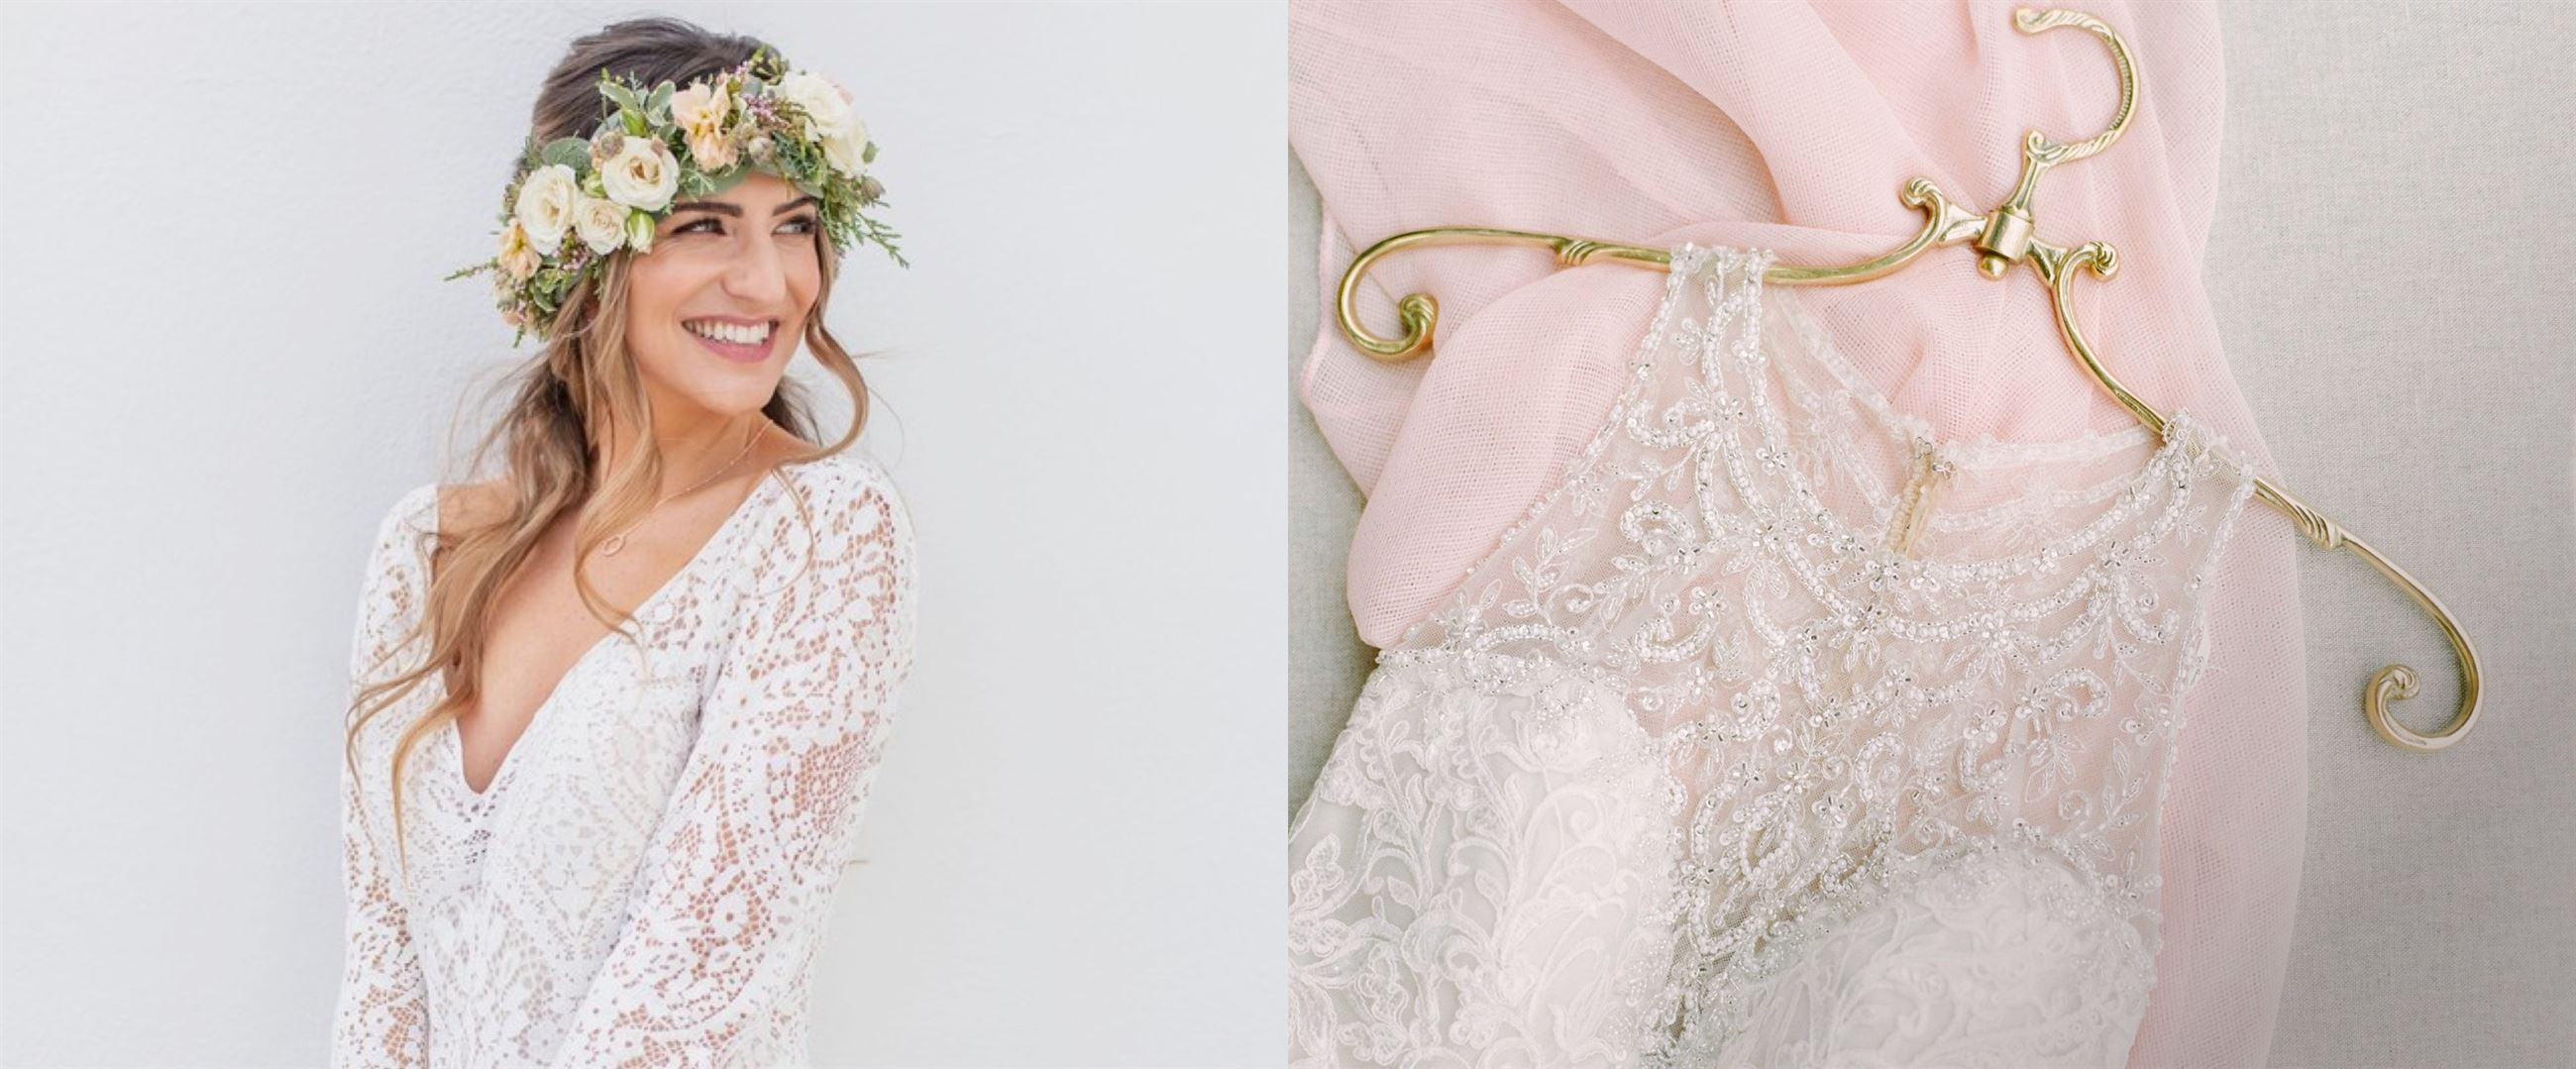 First image of a model wearing a boho wedding dress with a flower crown and second image shows a closeup of a beaded wedding dress